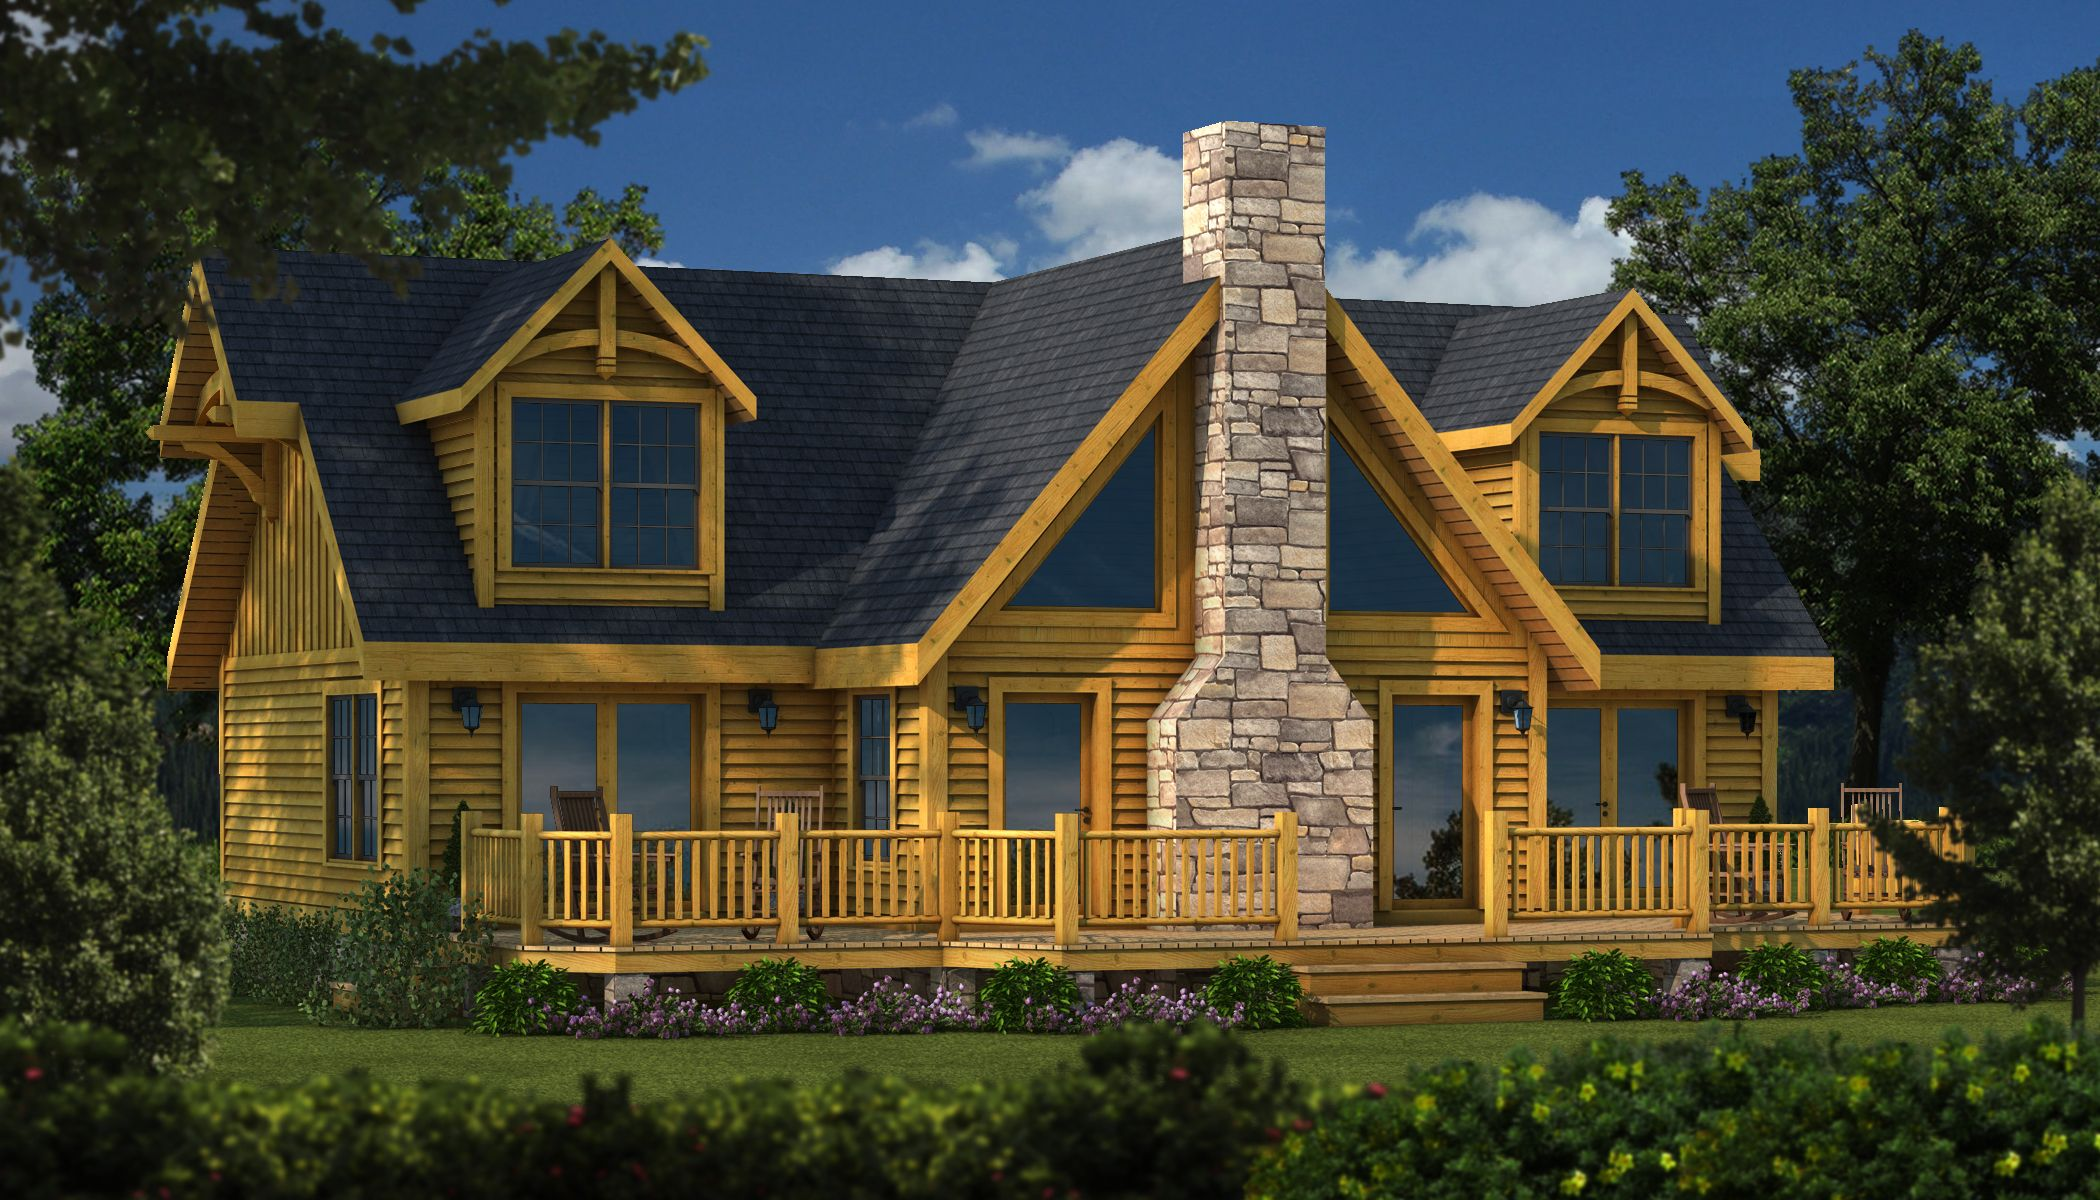 loanables tool a in cabins tools log misc tx for austin cabin playhouse located rental building